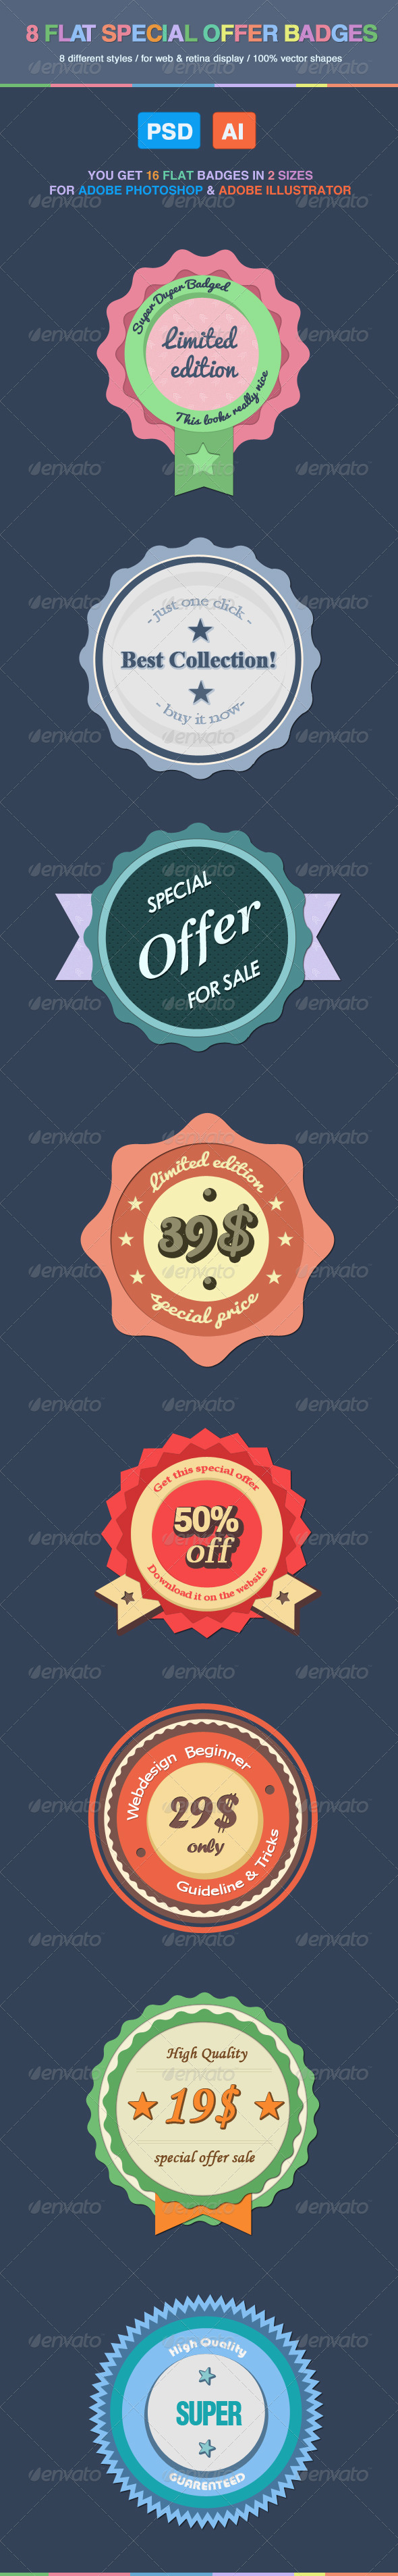 8 Flat Special Offer Badges - Badges & Stickers Web Elements